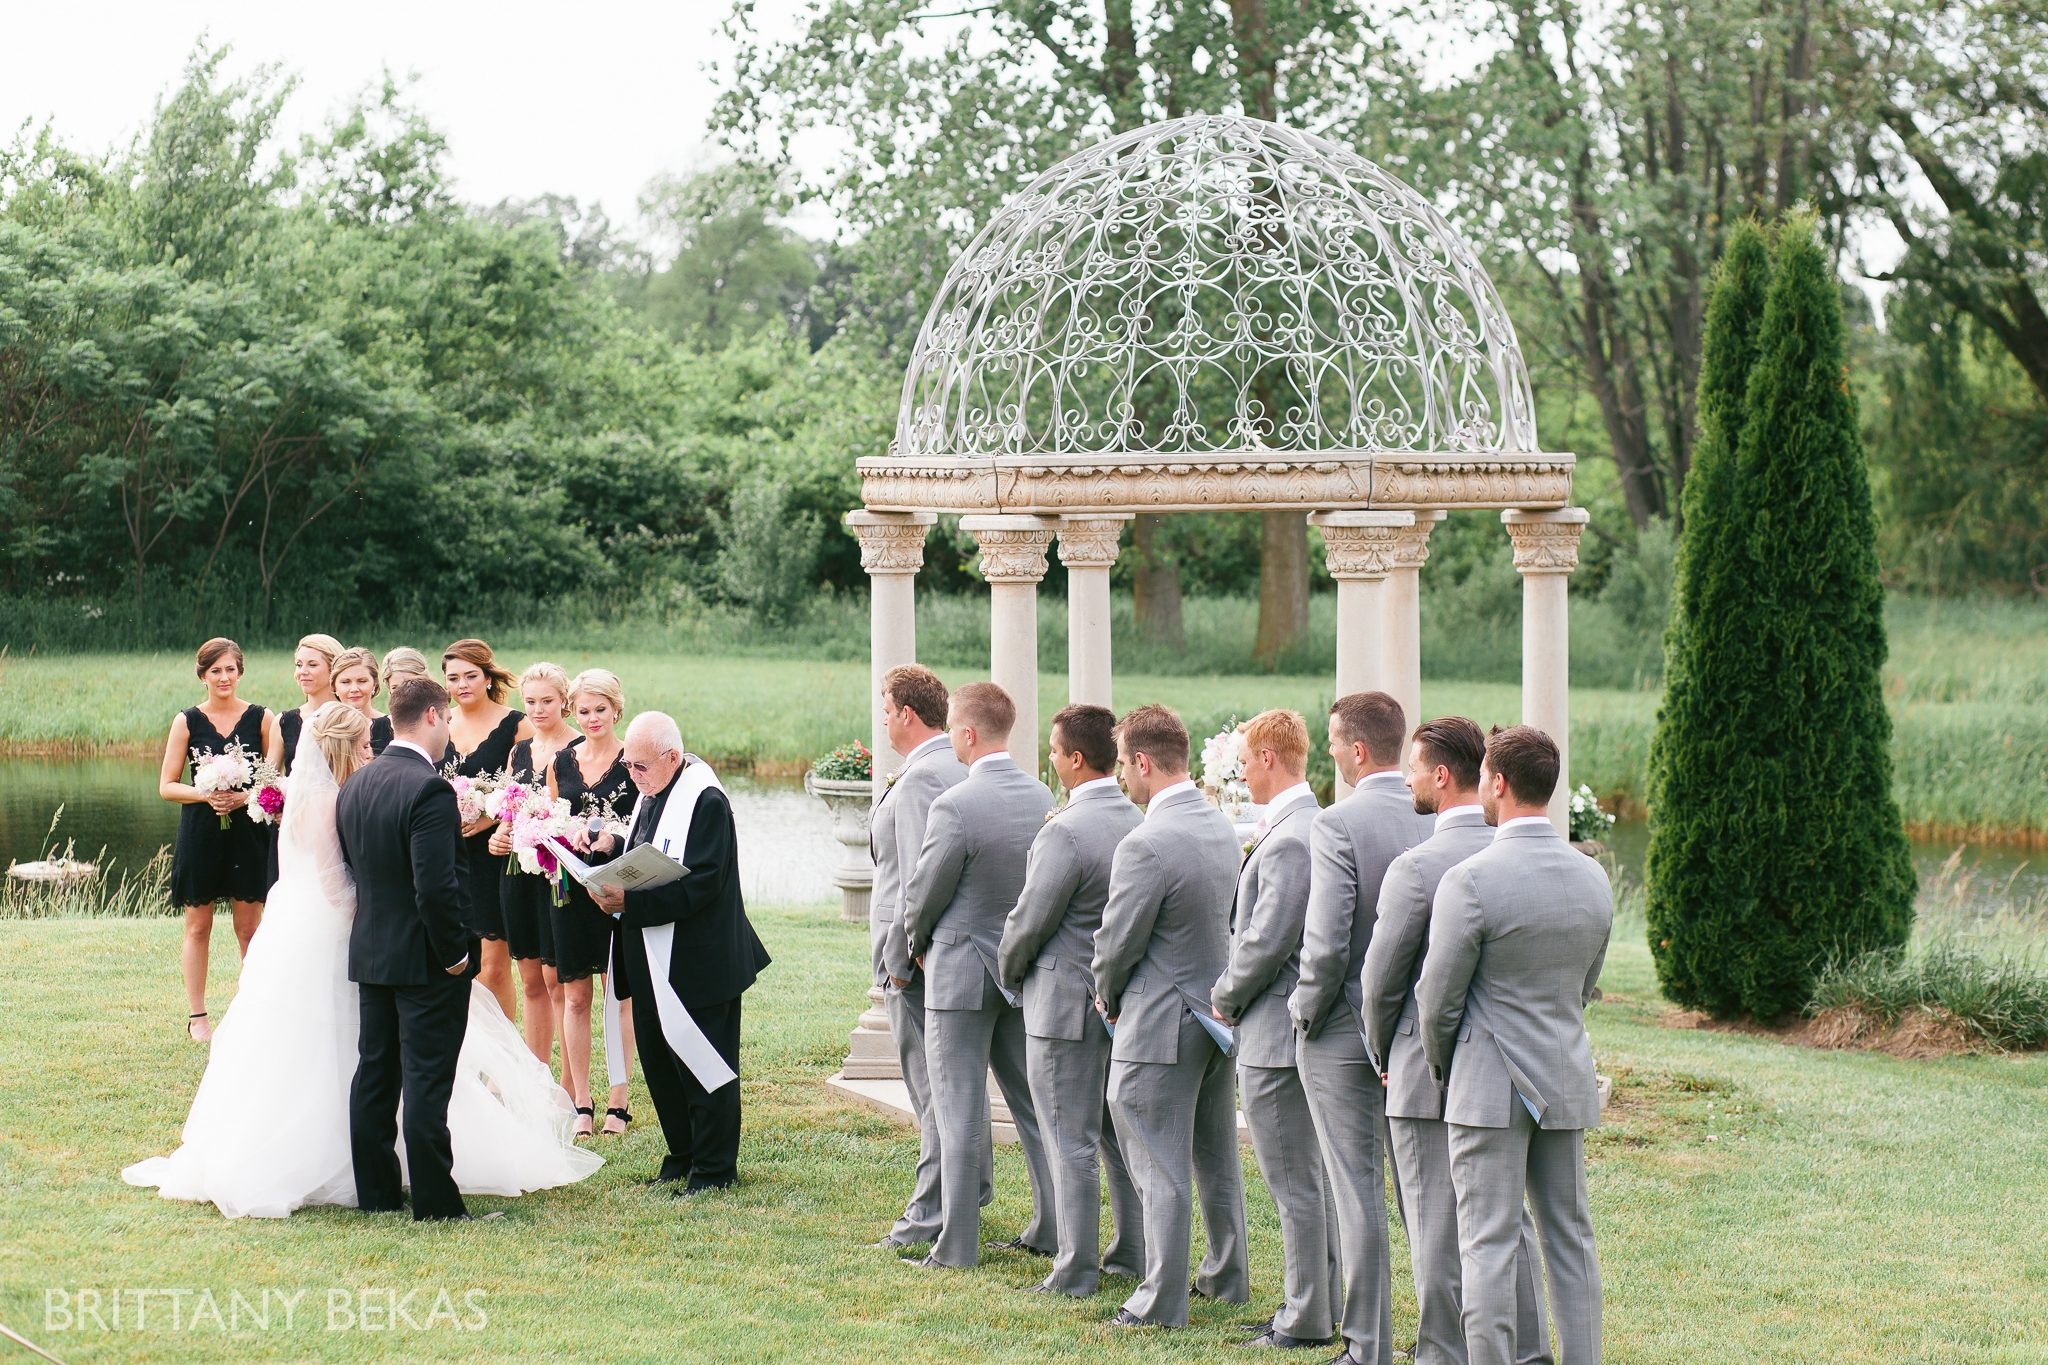 New Buffalo Wedding - Willow Harbor Vineyards Wedding Photos - Brittany Bekas Photography_0040